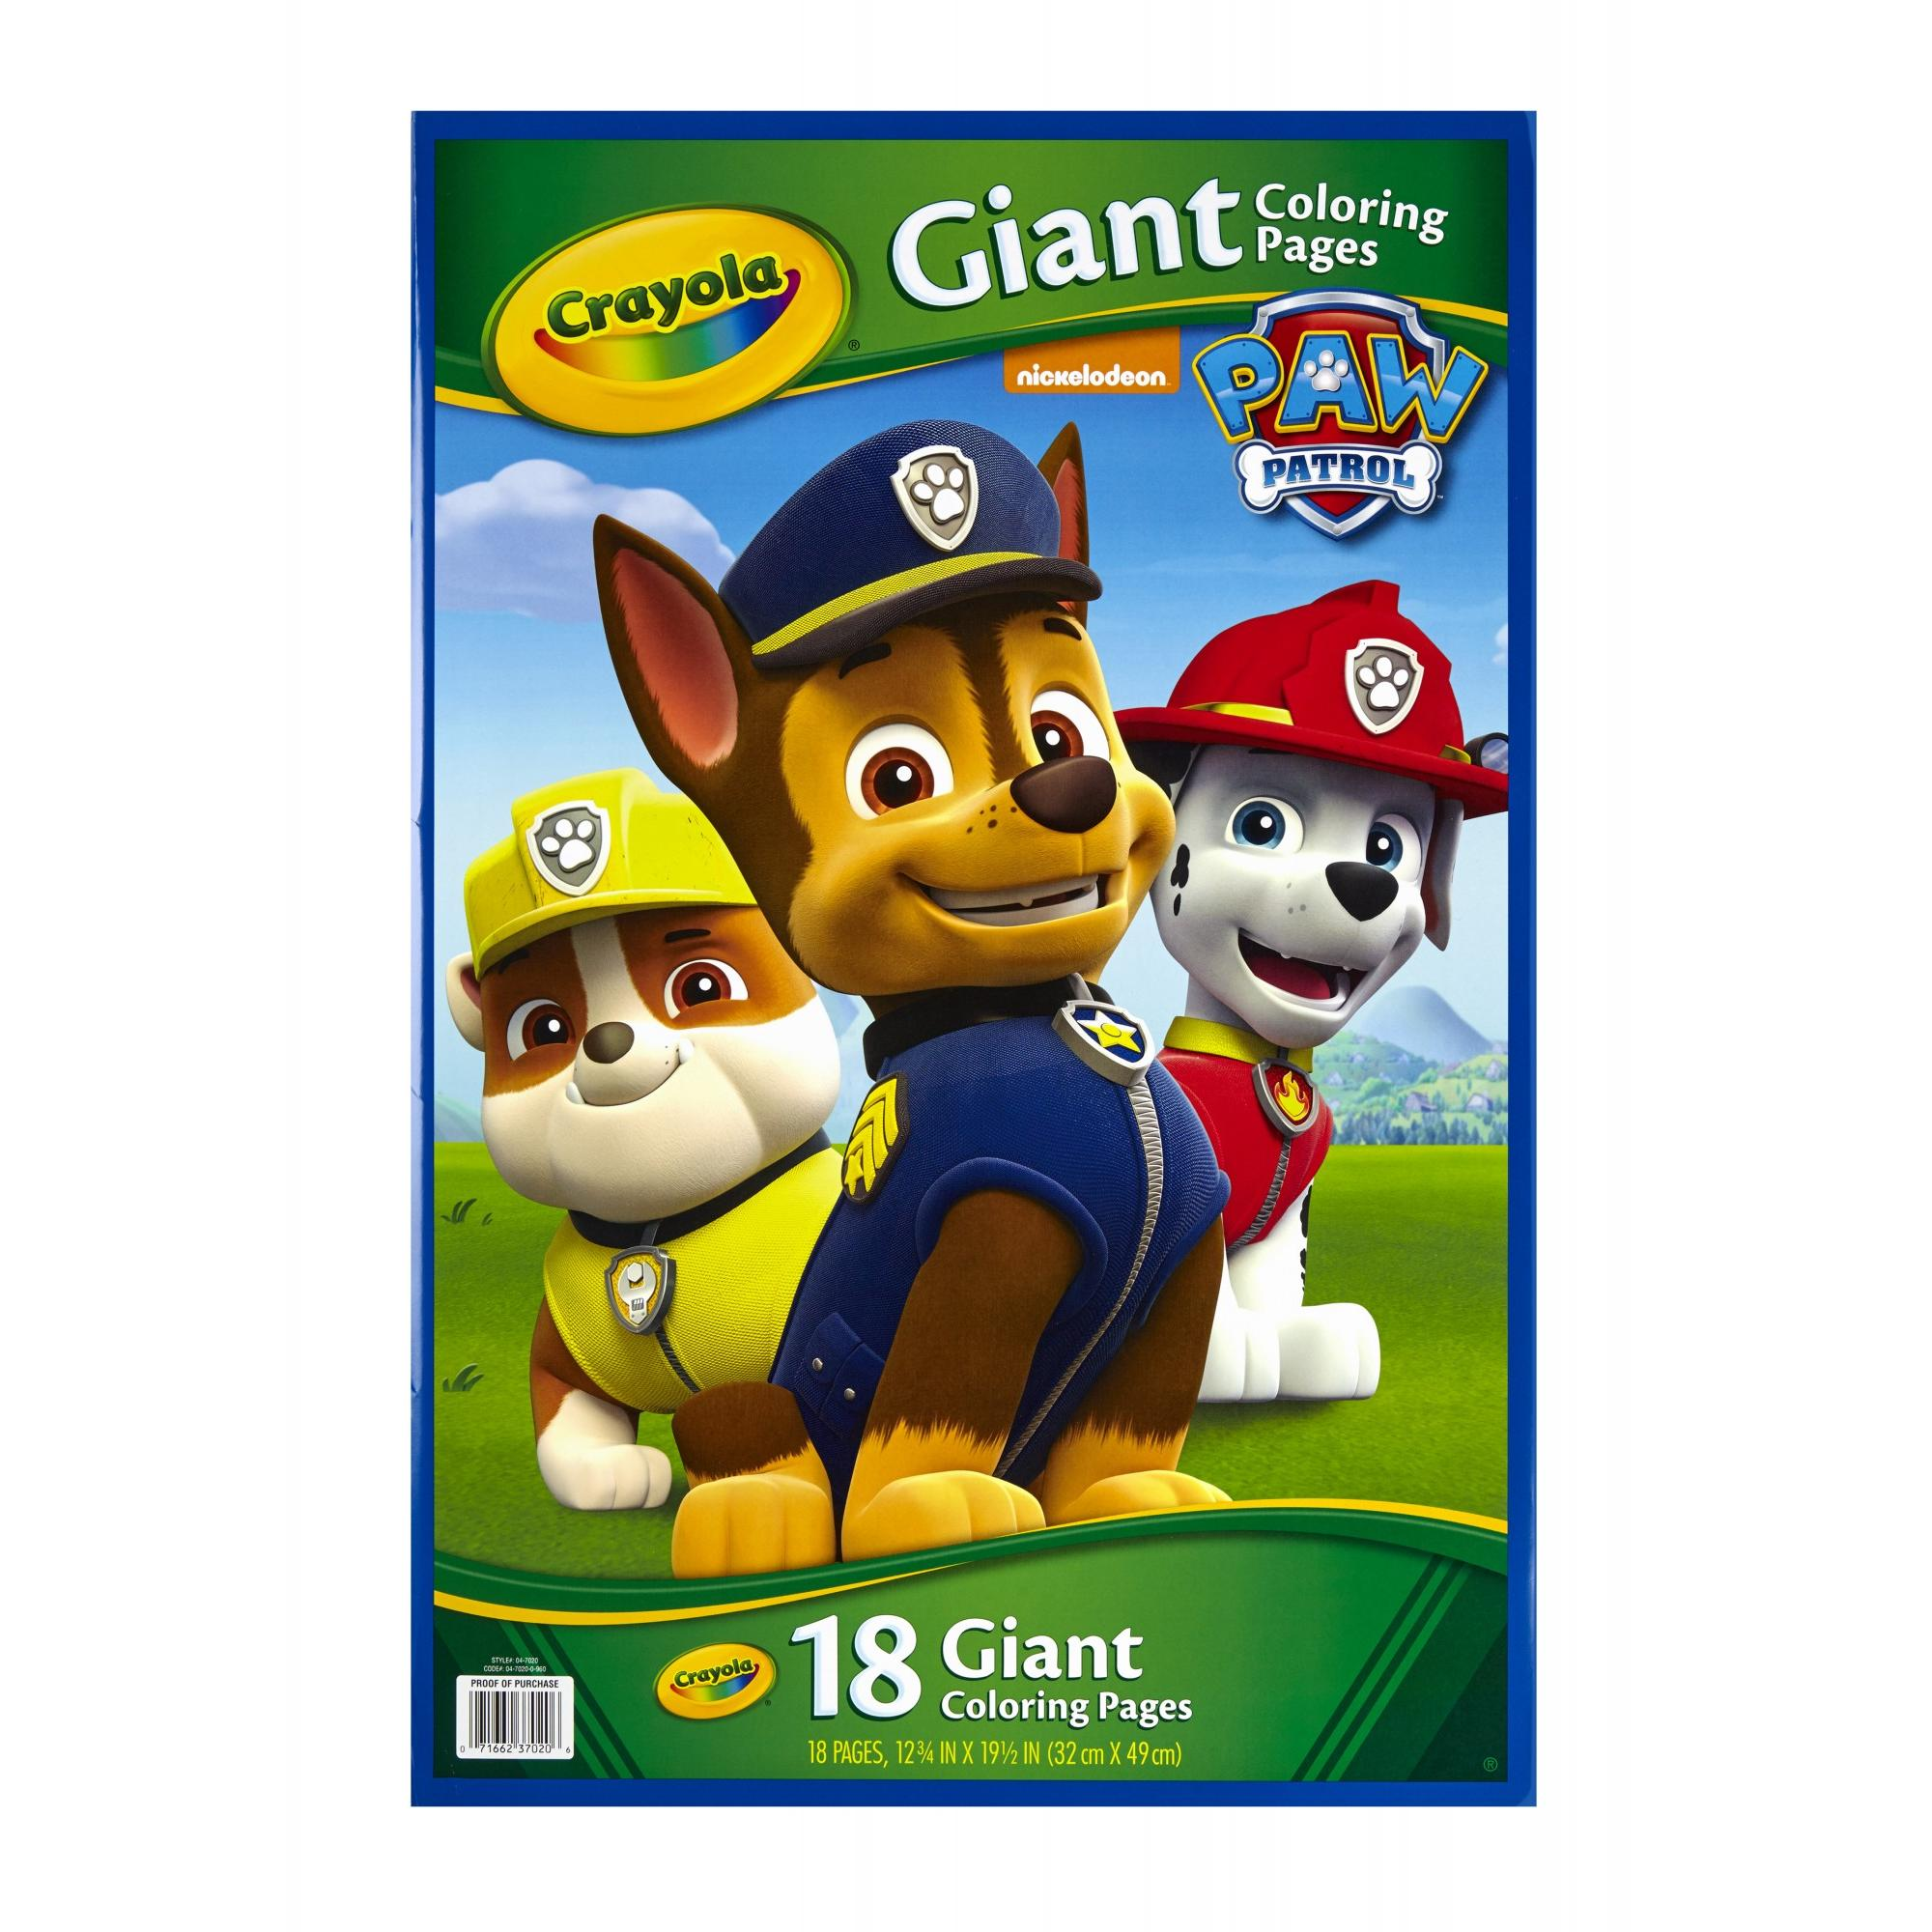 Crayola Giant Coloring Pages Nickelodeon Paw Patrol Walmartcom